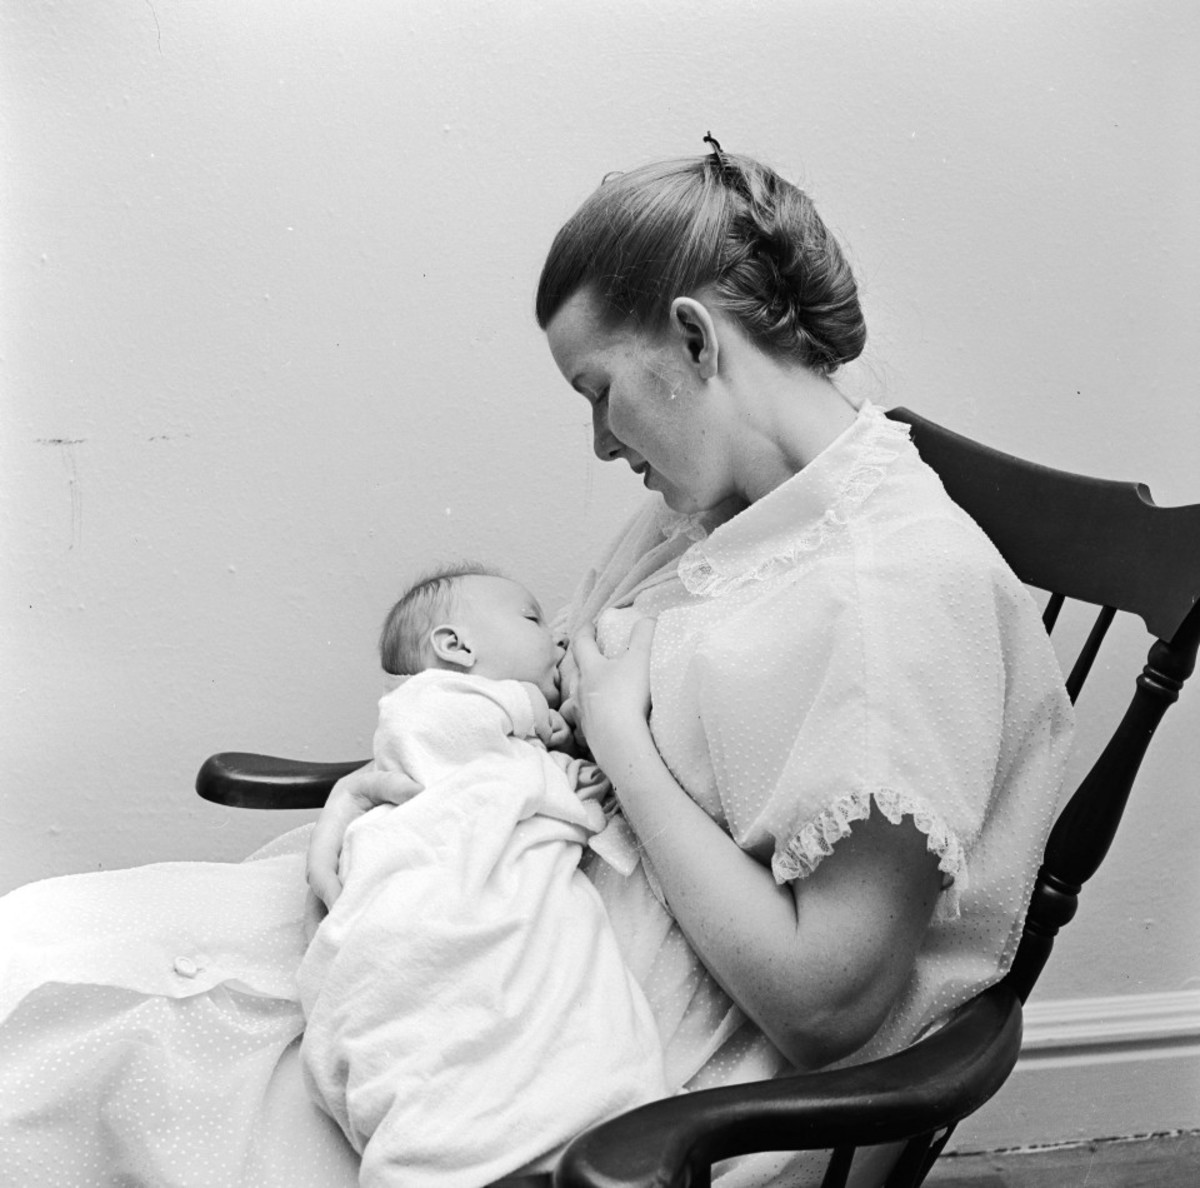 Black-and-white photo showing a woman in a rocking chair, breastfeeding an infant